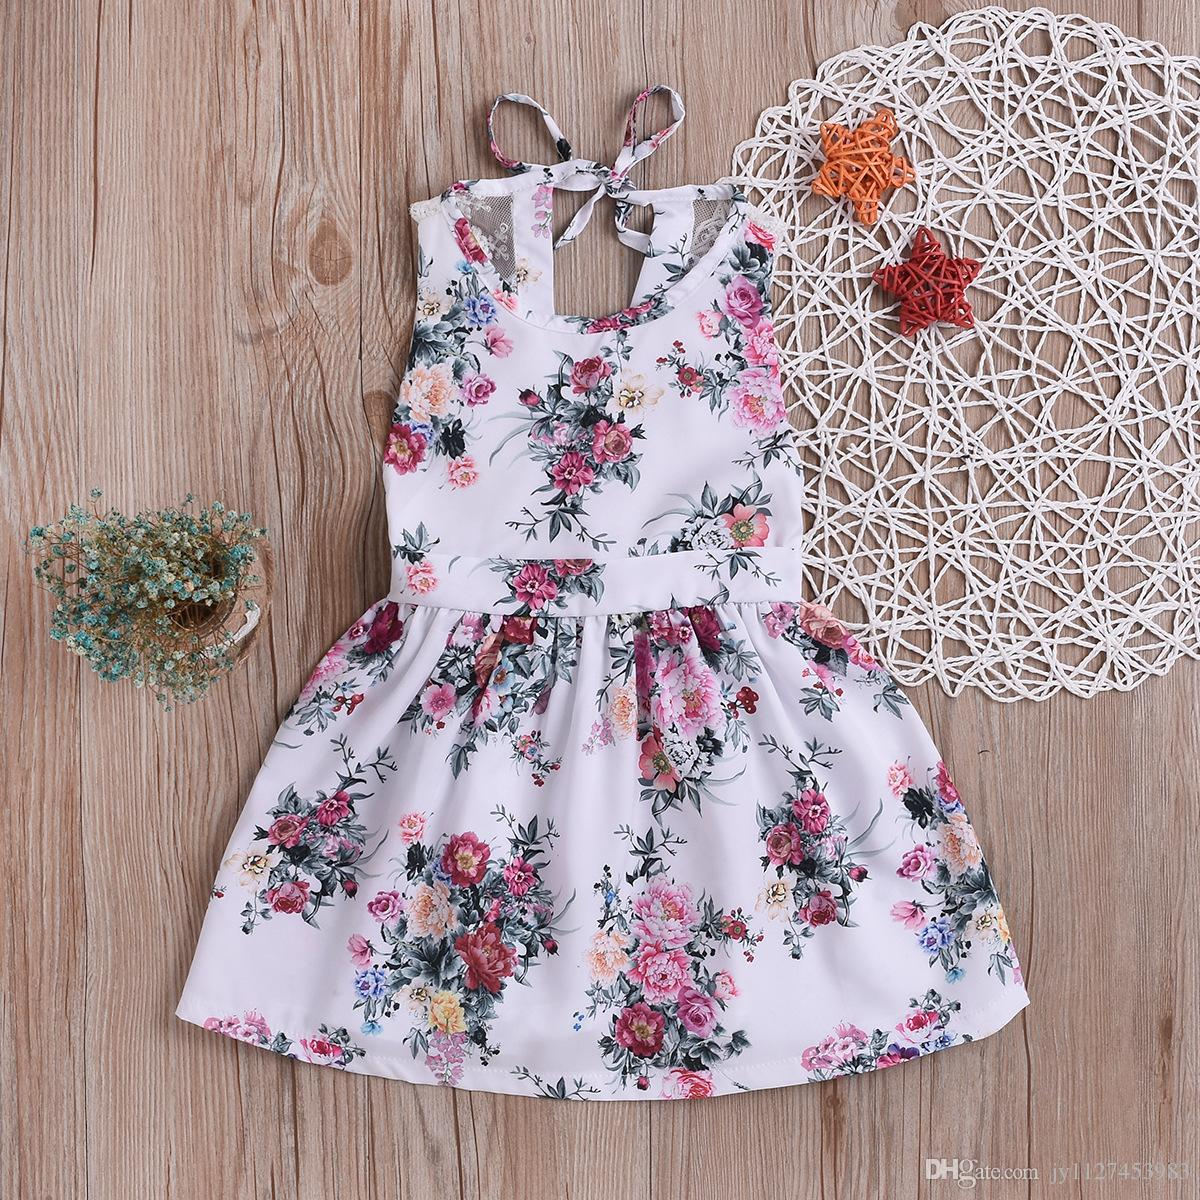 2020 New Style Girls Casual Dress Wholesale Baby Frock Designs